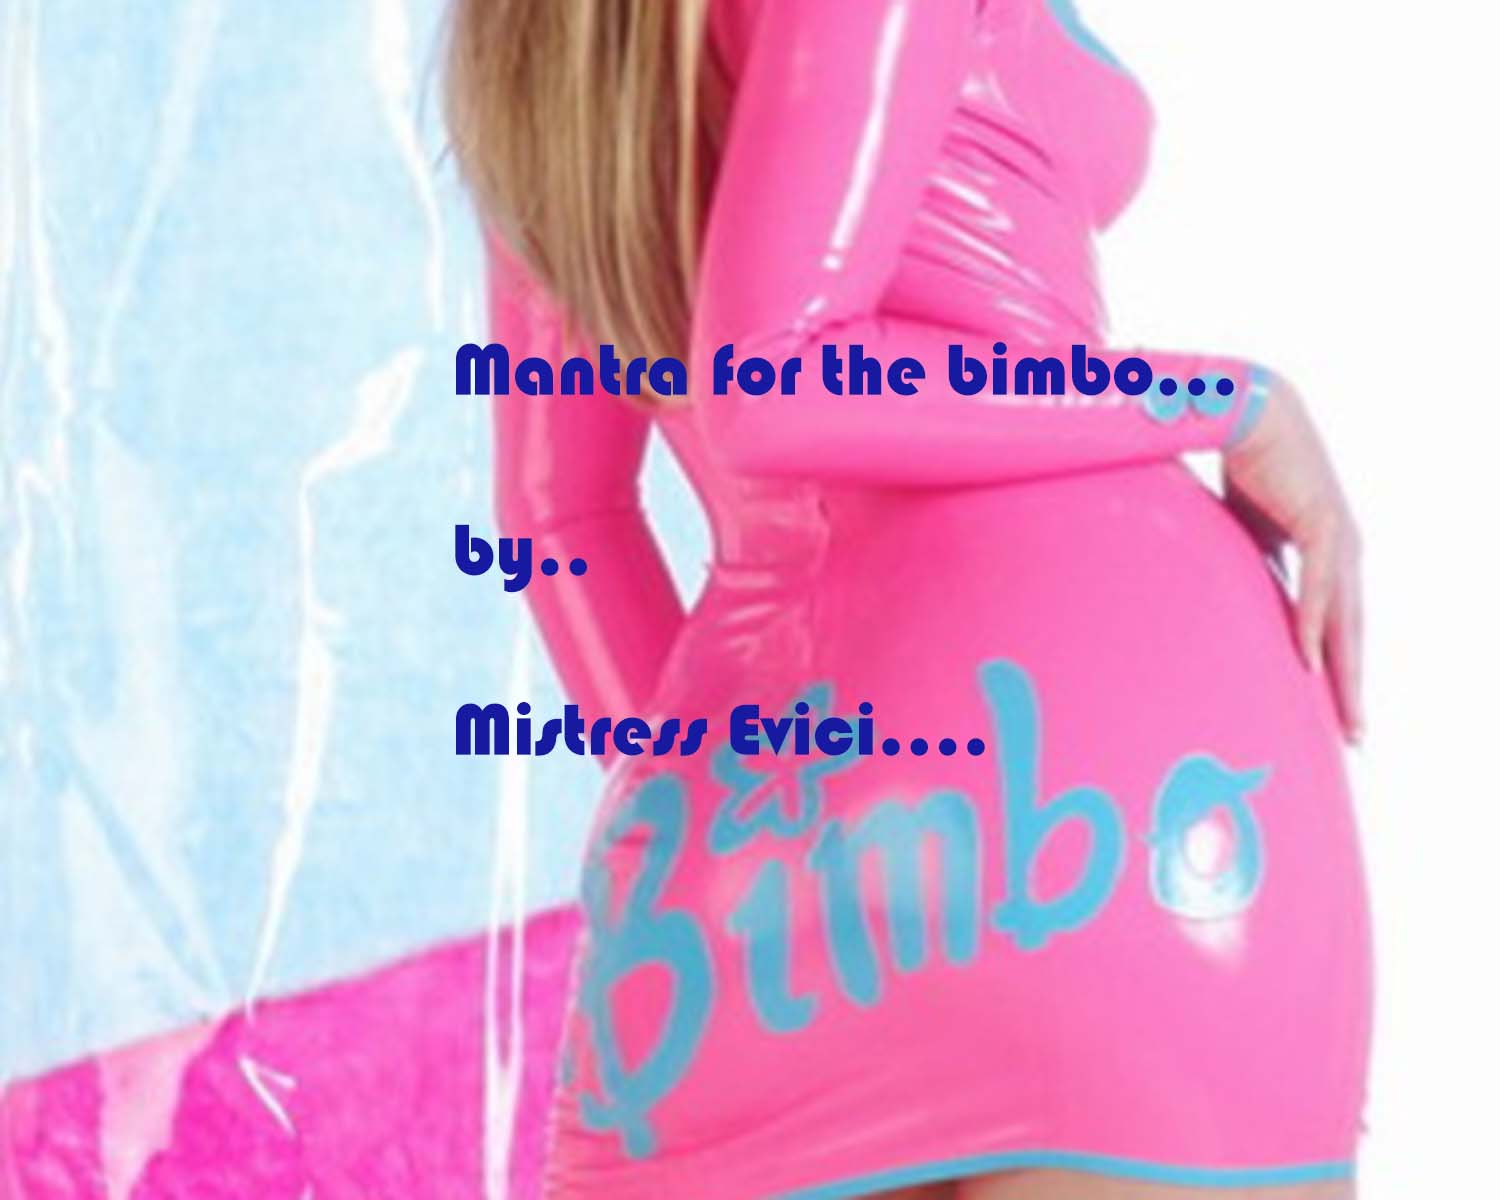 Mantra for the Bimbo